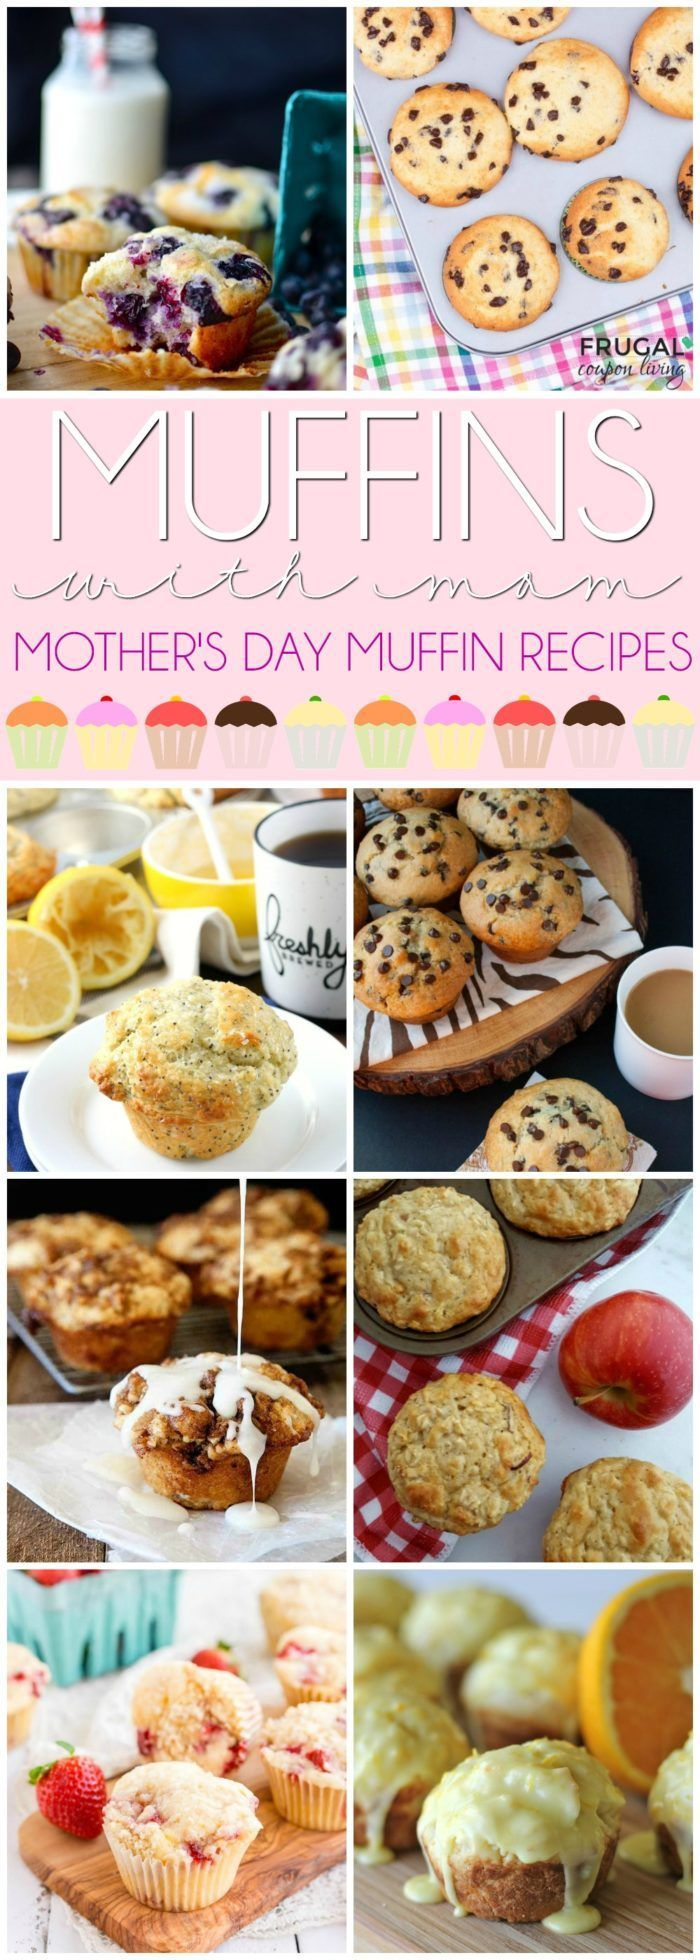 Muffins with Mom Muffin Recipes for Mother's Day #mothersday #muffinswithmommy...